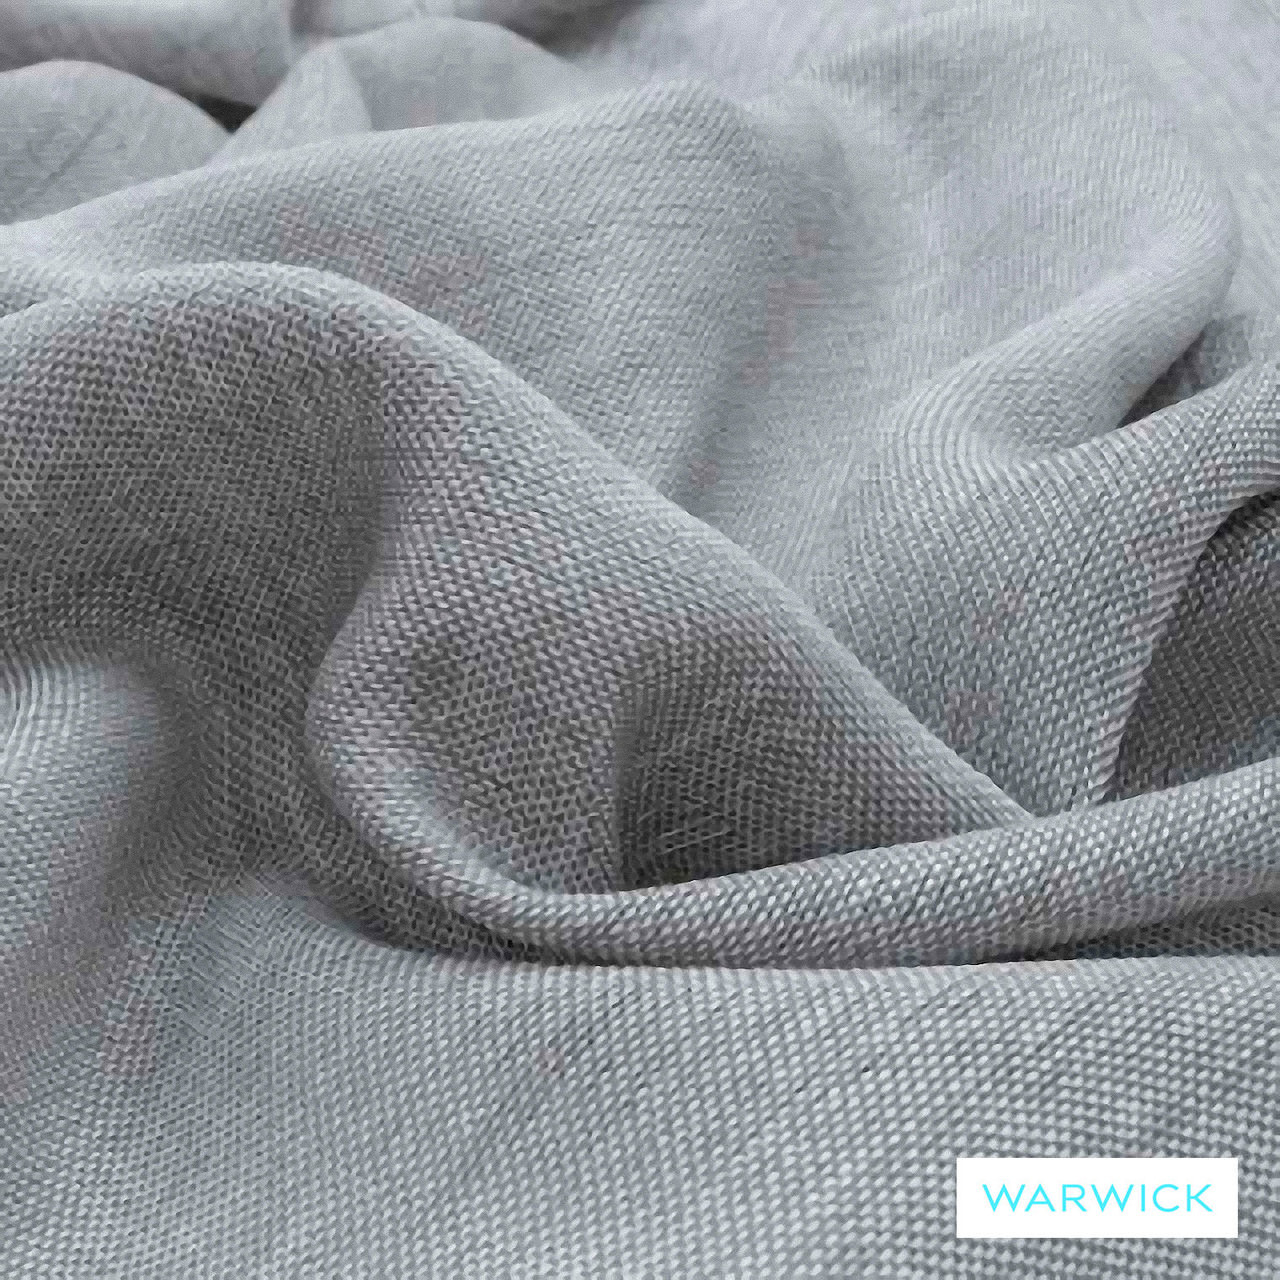 Warwick Chios Asphalt  | Curtain Sheer Fabric - Grey, Plain, Synthetic, Transitional, Washable, Domestic Use, Weighted Hem, Wide Width